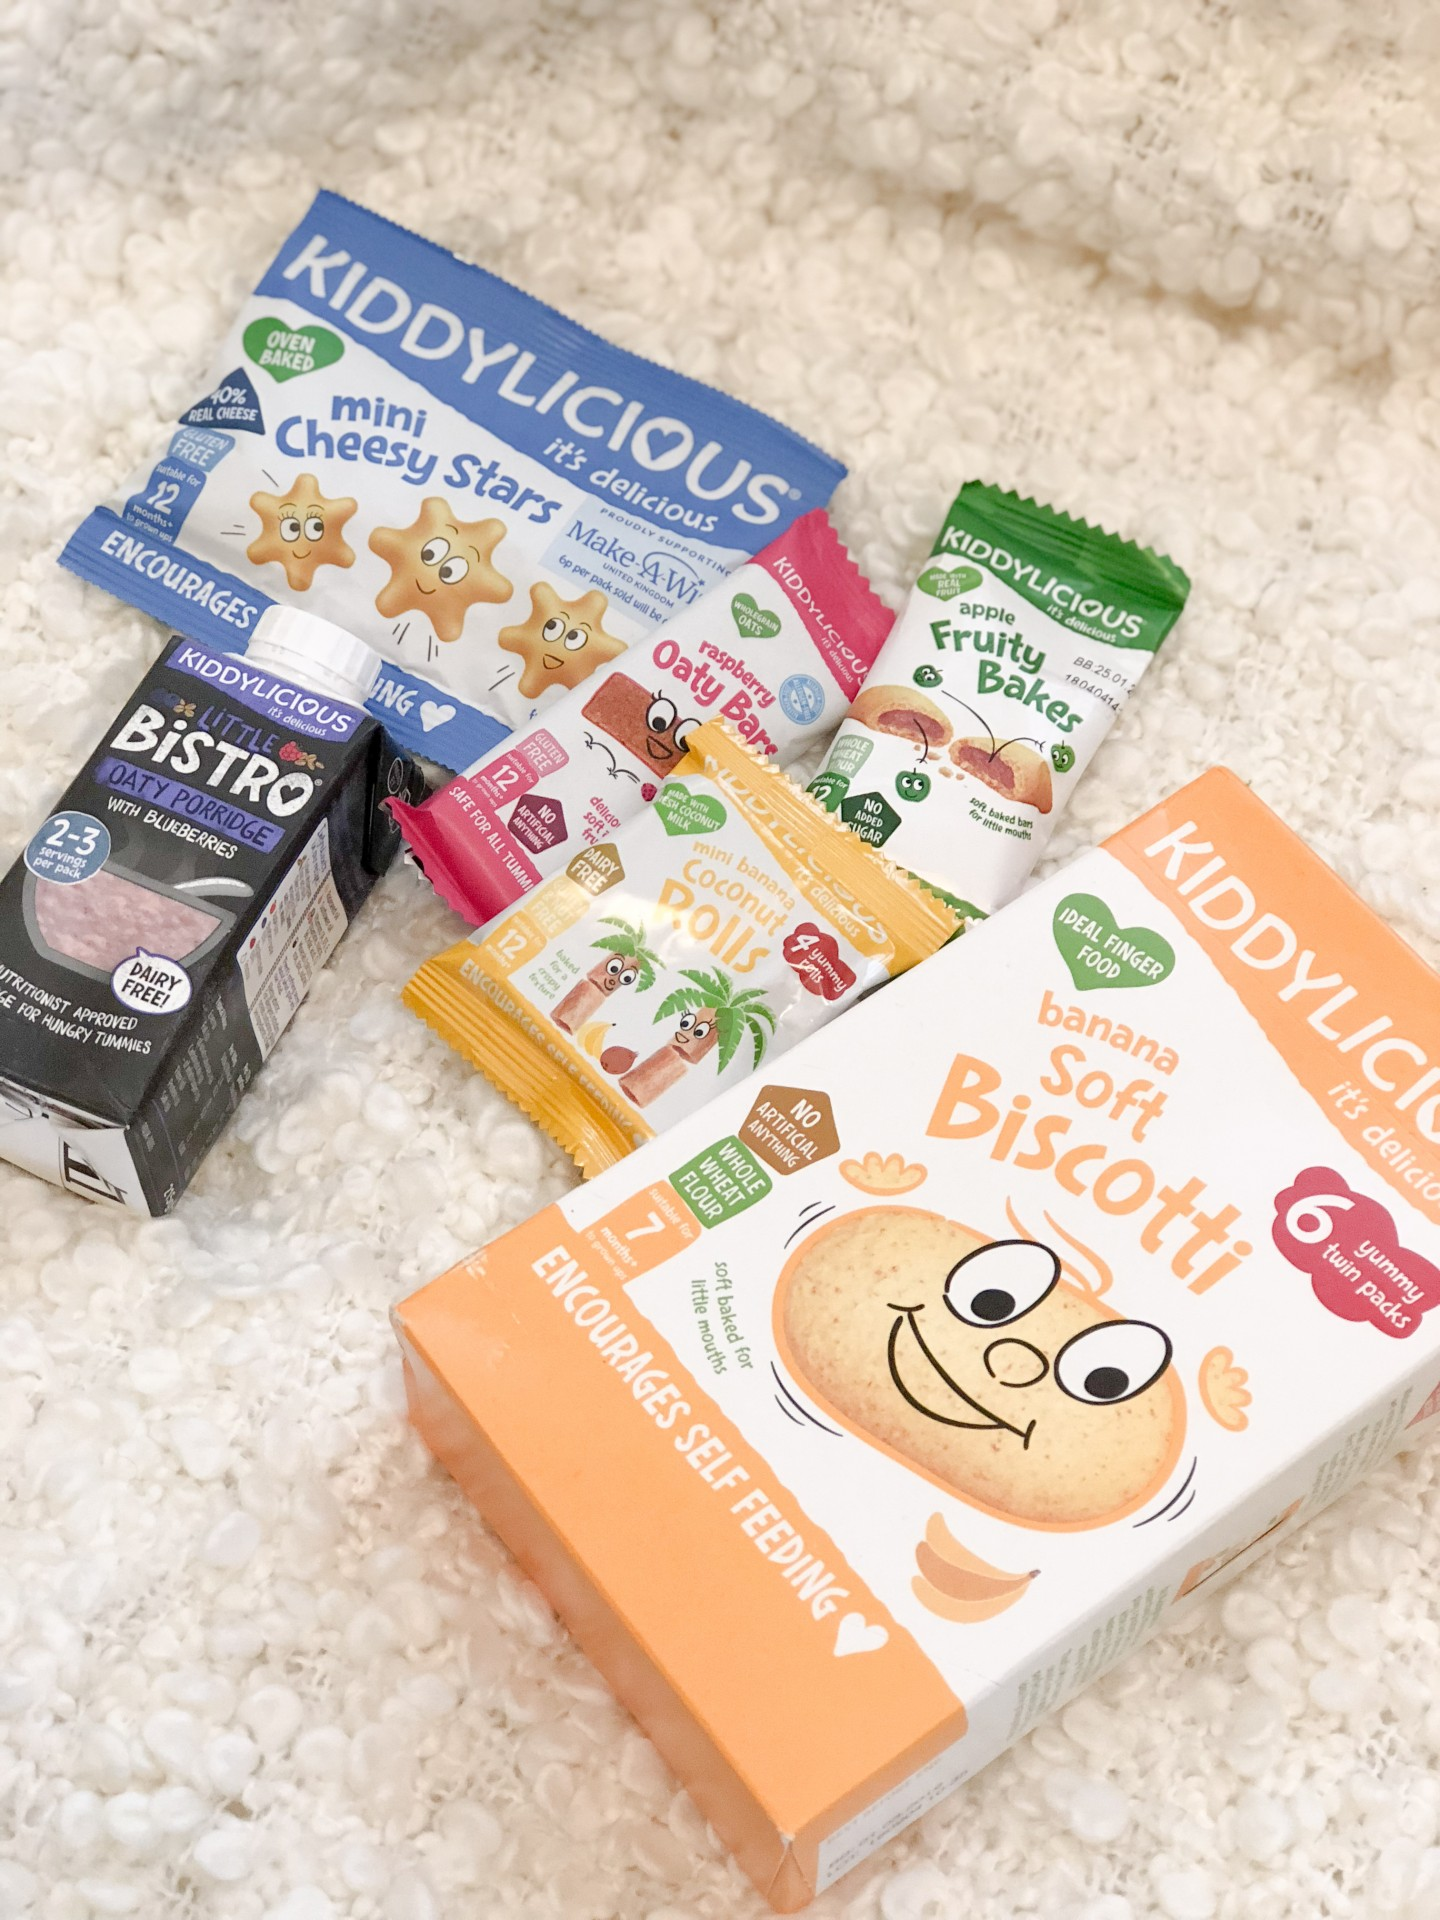 tots and tykes hamper social network solutions explore new brands kiddylicious weaning porridge snacks review